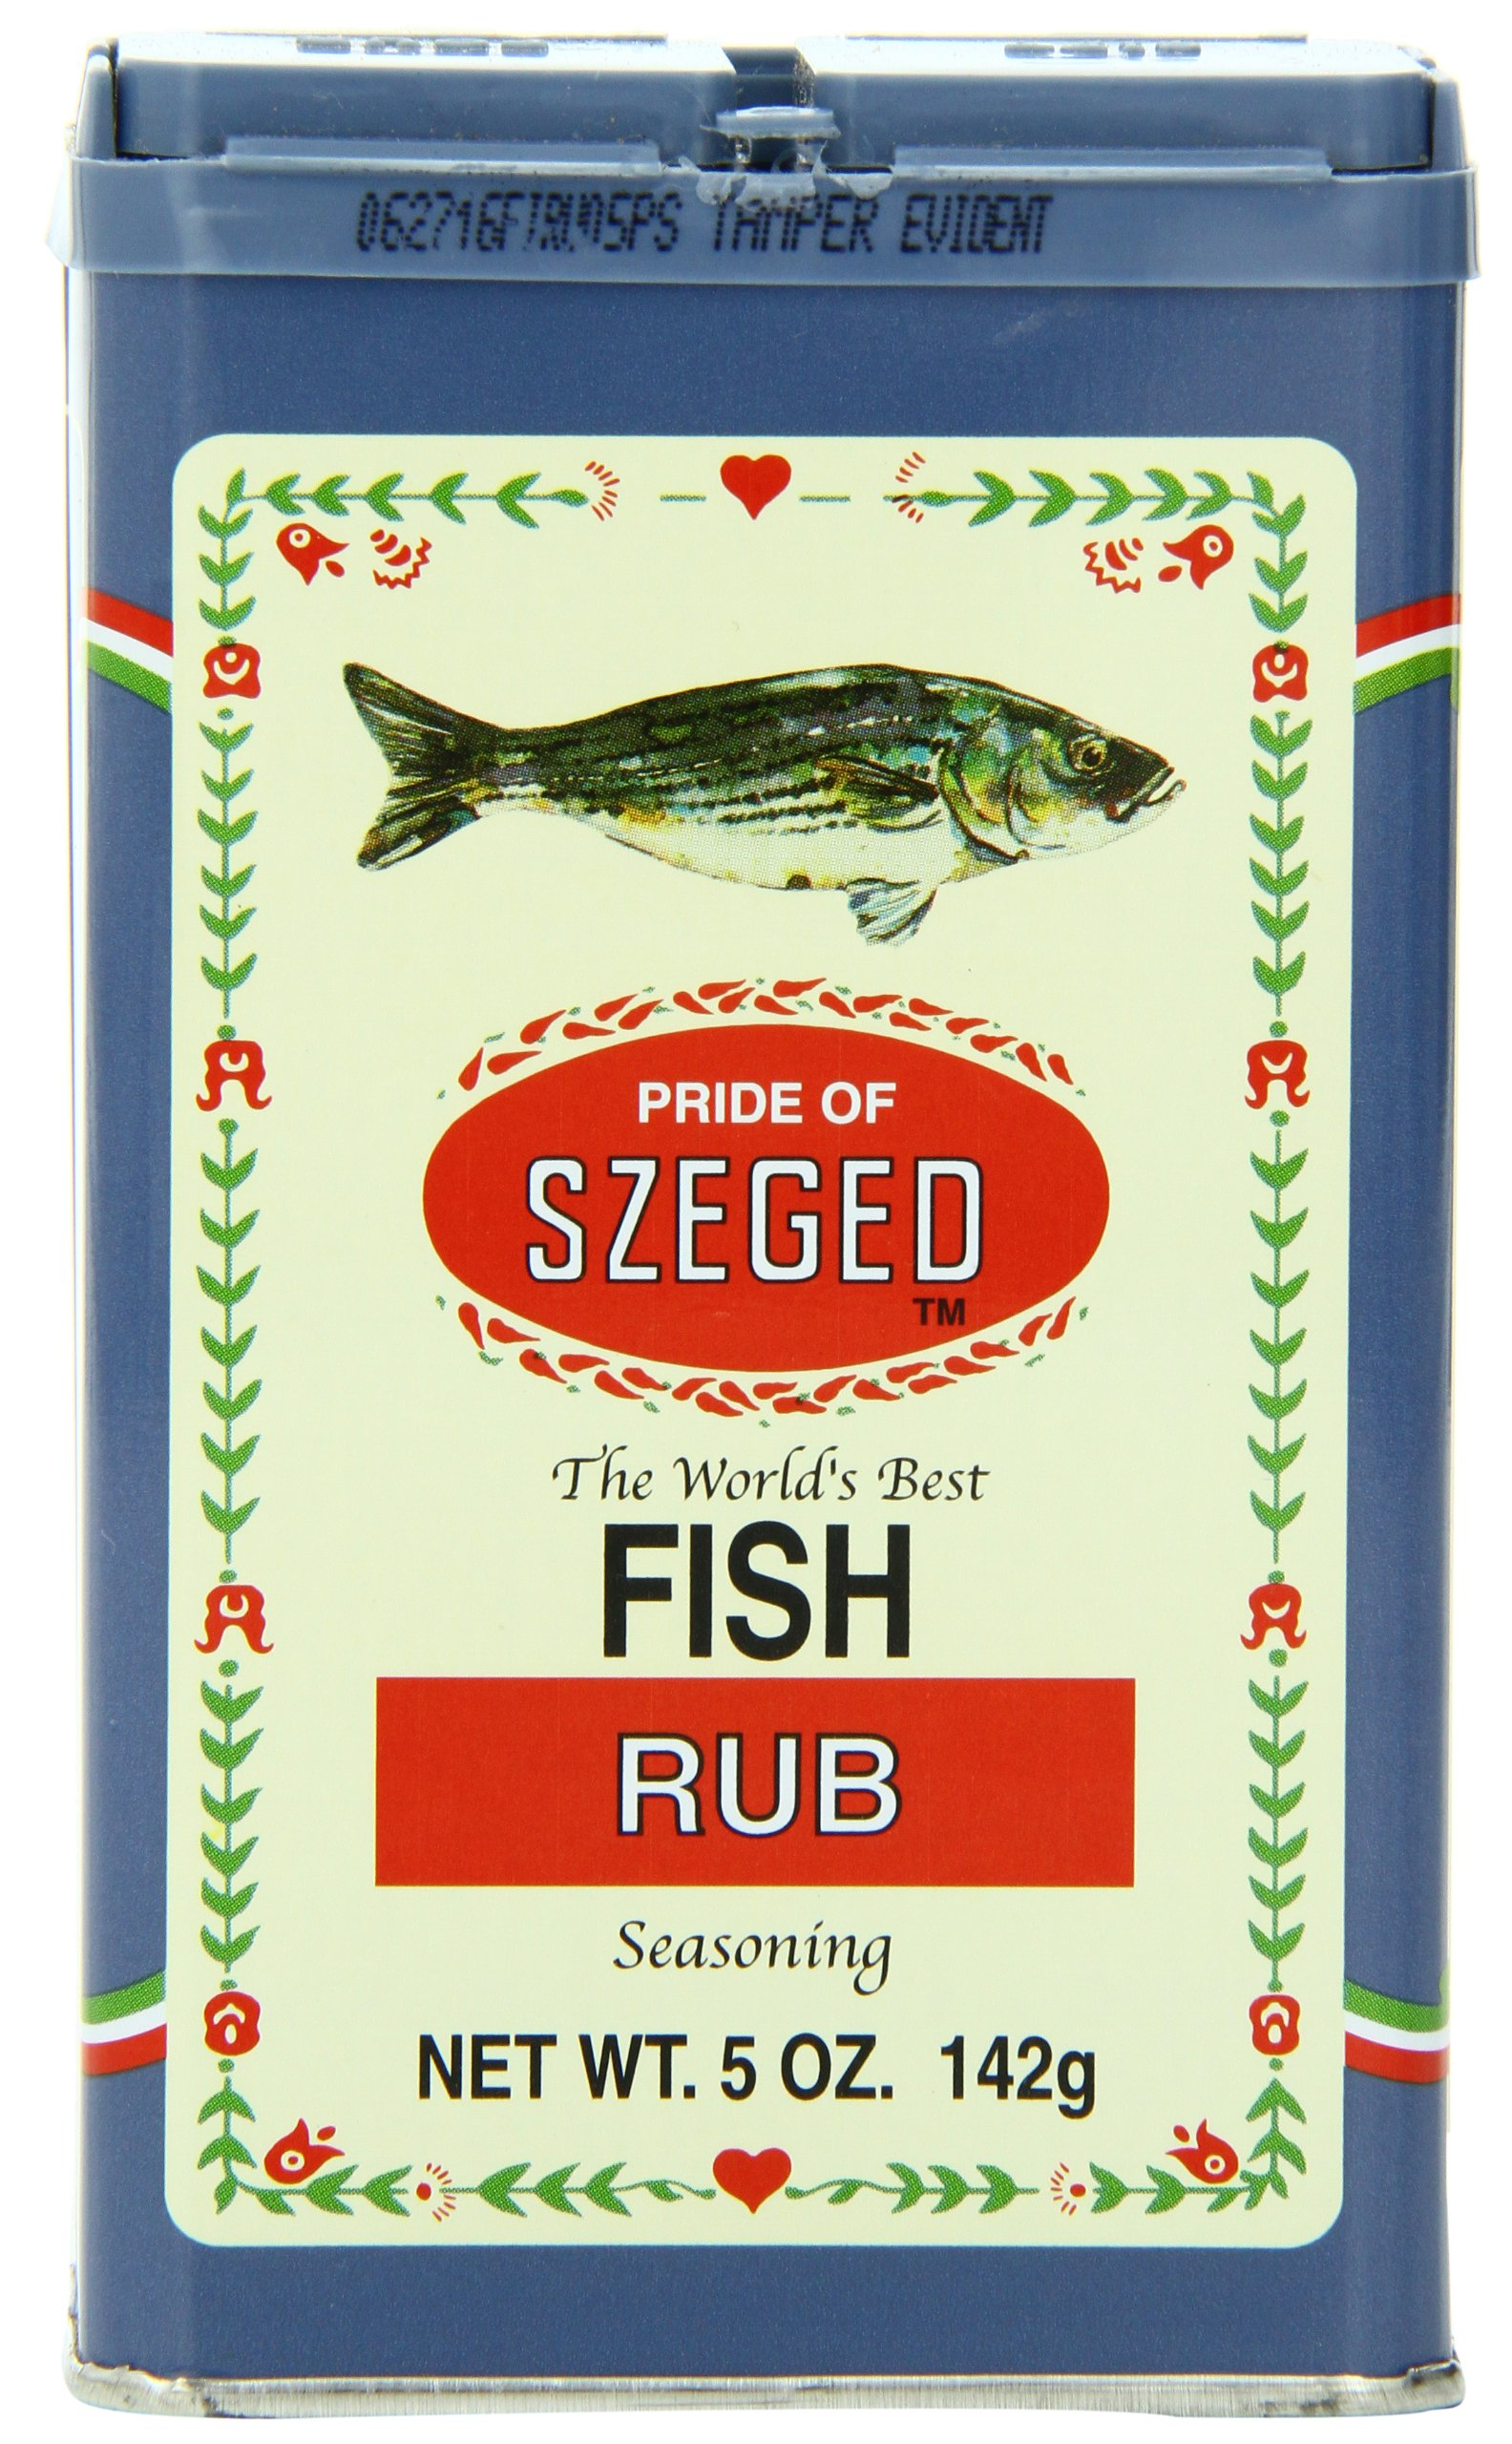 Szeged Fish Rub, 5-Ounce Tins (Pack of 6)